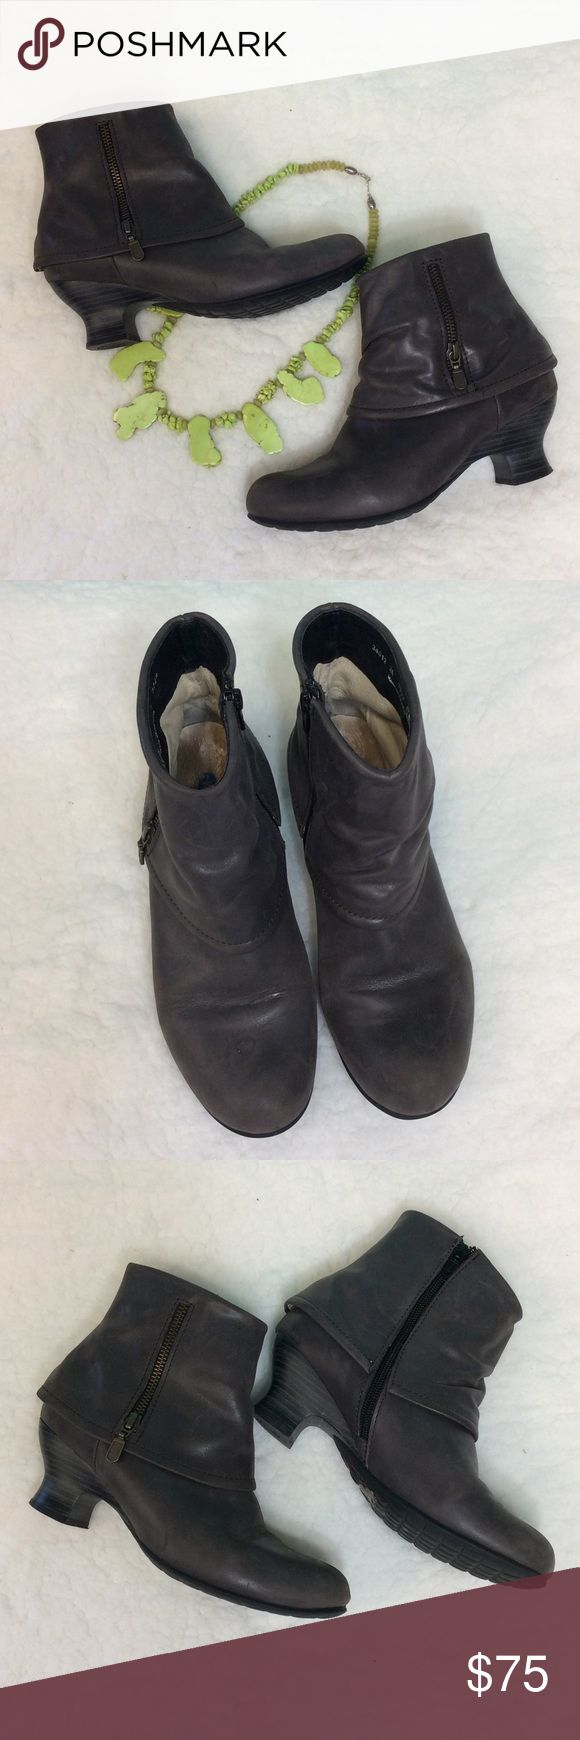 Wolky gray leather ankle boots Wolky gray leather ankle boots excellent condition no damage very comfortable walking shoes wolky Shoes Ankle Boots & Booties